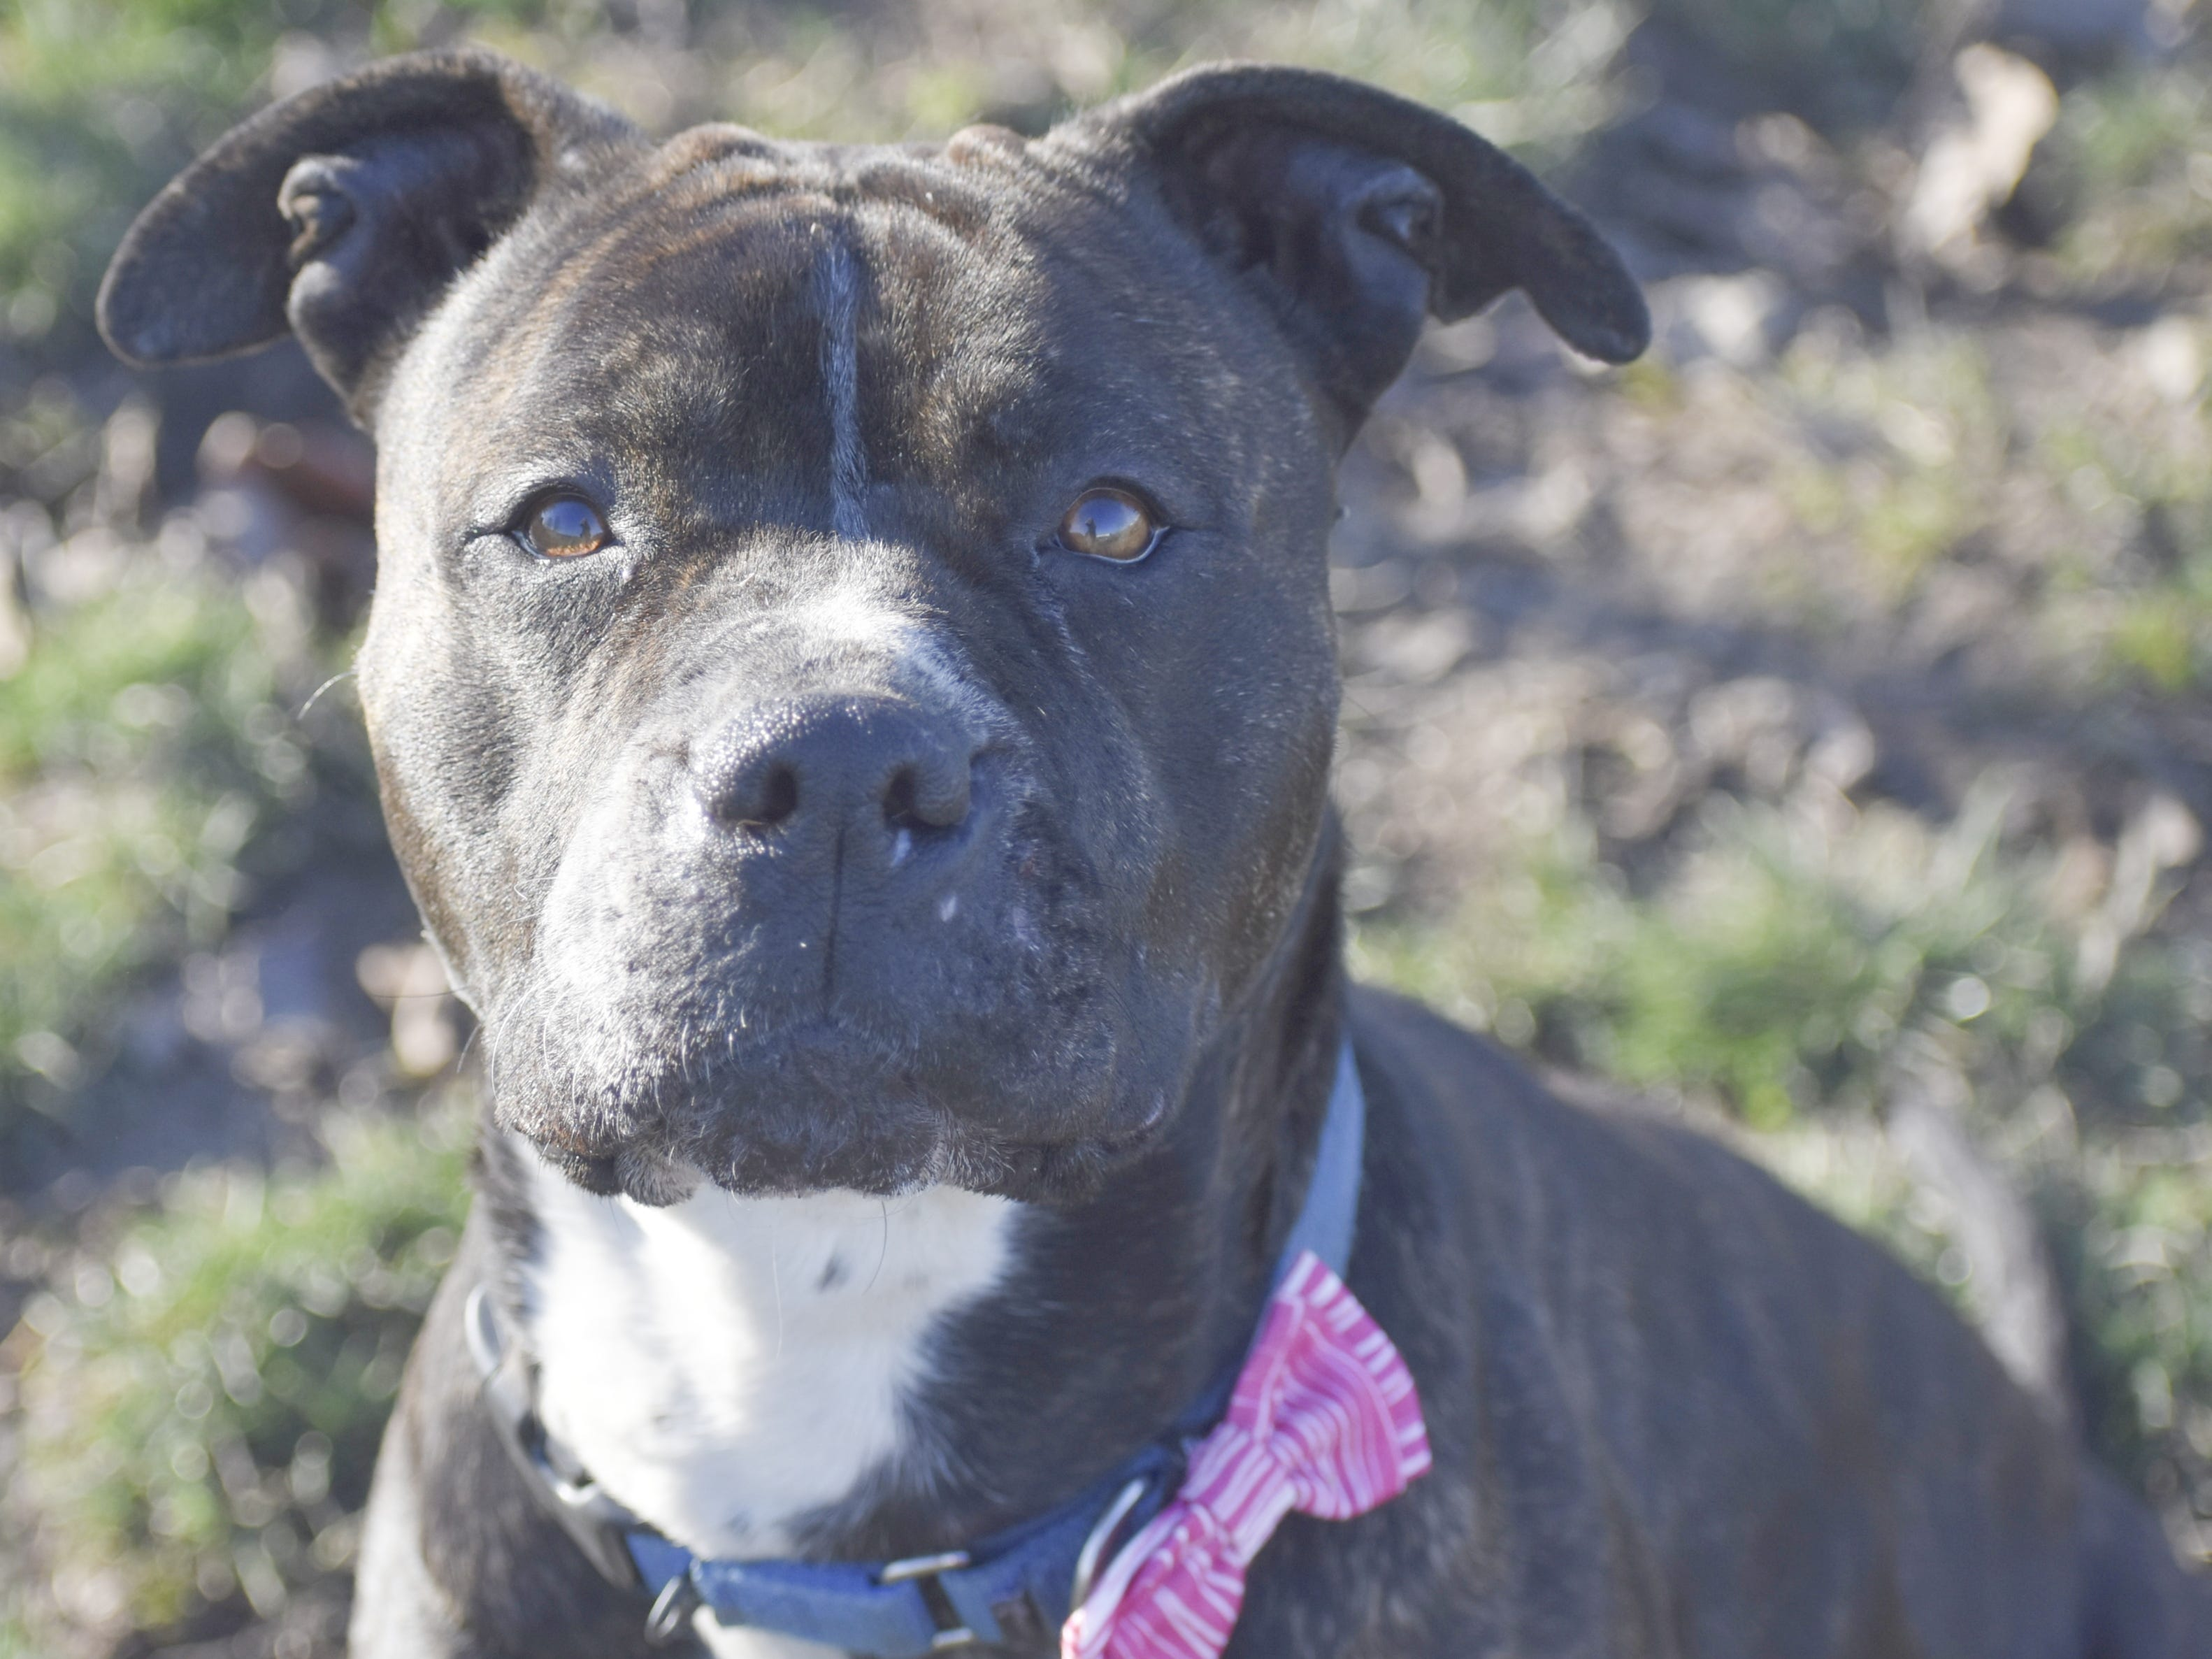 Rain is a 4-year-old female brindle and white American pit bull mix. She likes a good ear scratch, quiet time and plush toys. Rain loves to learn more than sit. Contact Marion County Dog Services at 503-588-5366 or go to www.MCDogs.net.